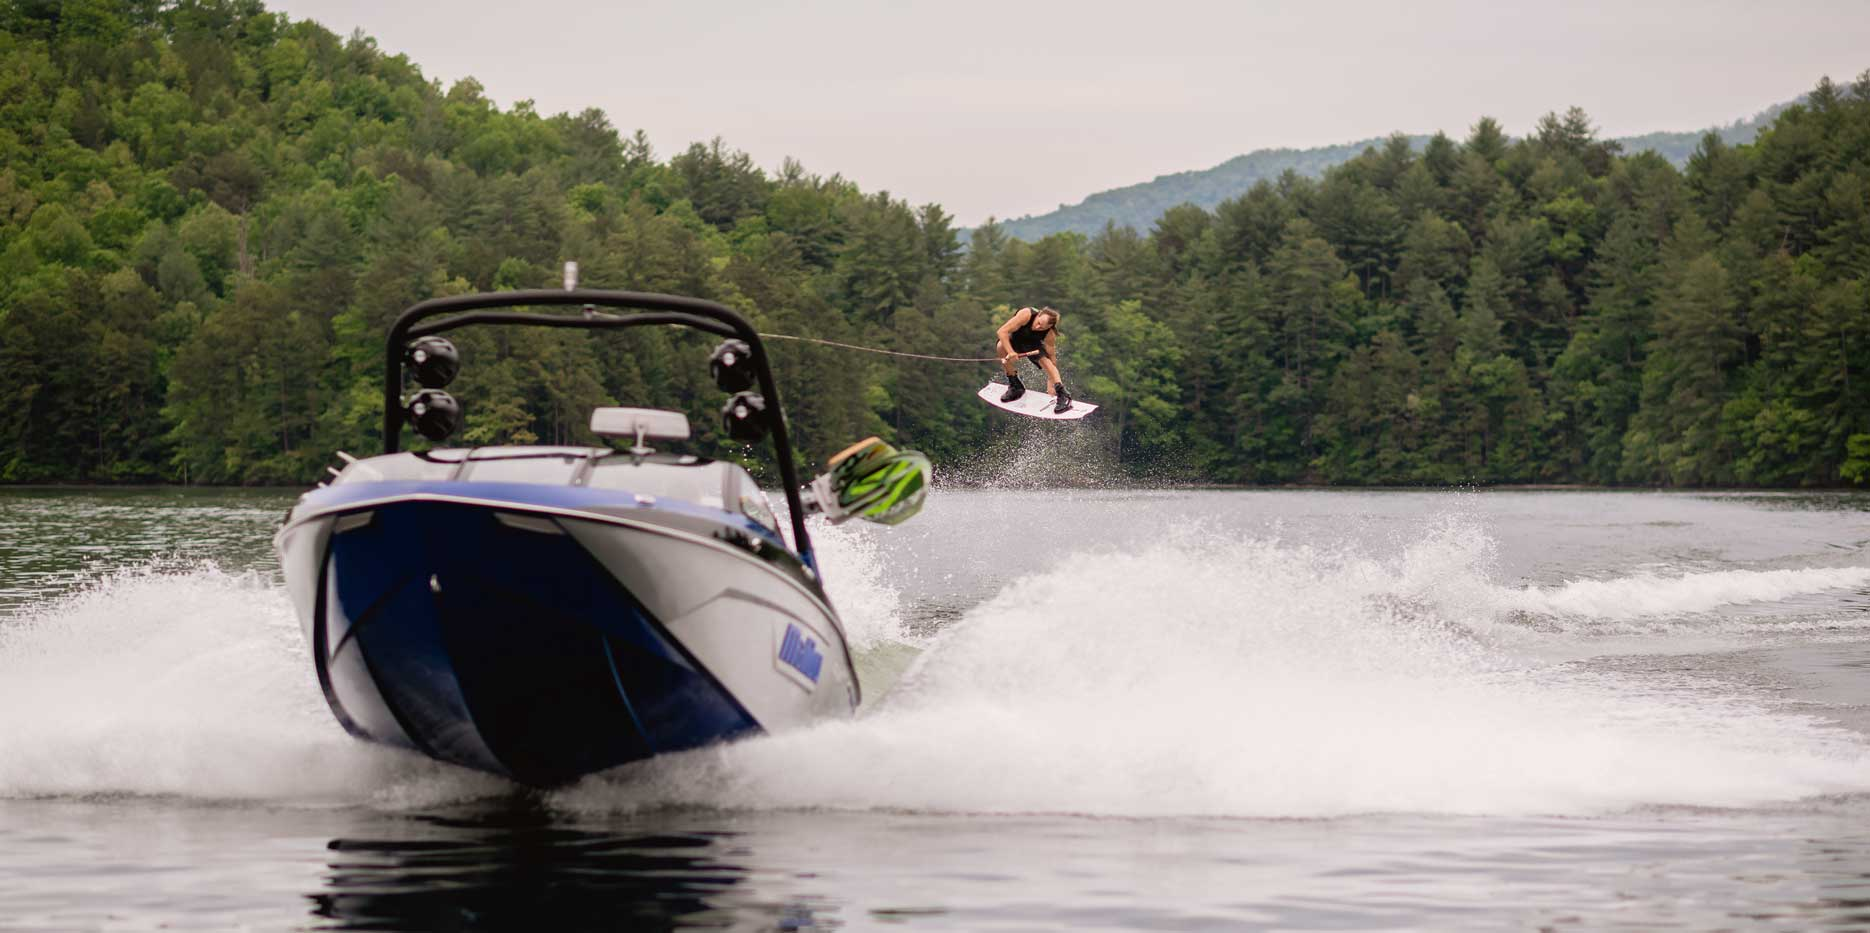 Wakeboarding action on the 23 LSV